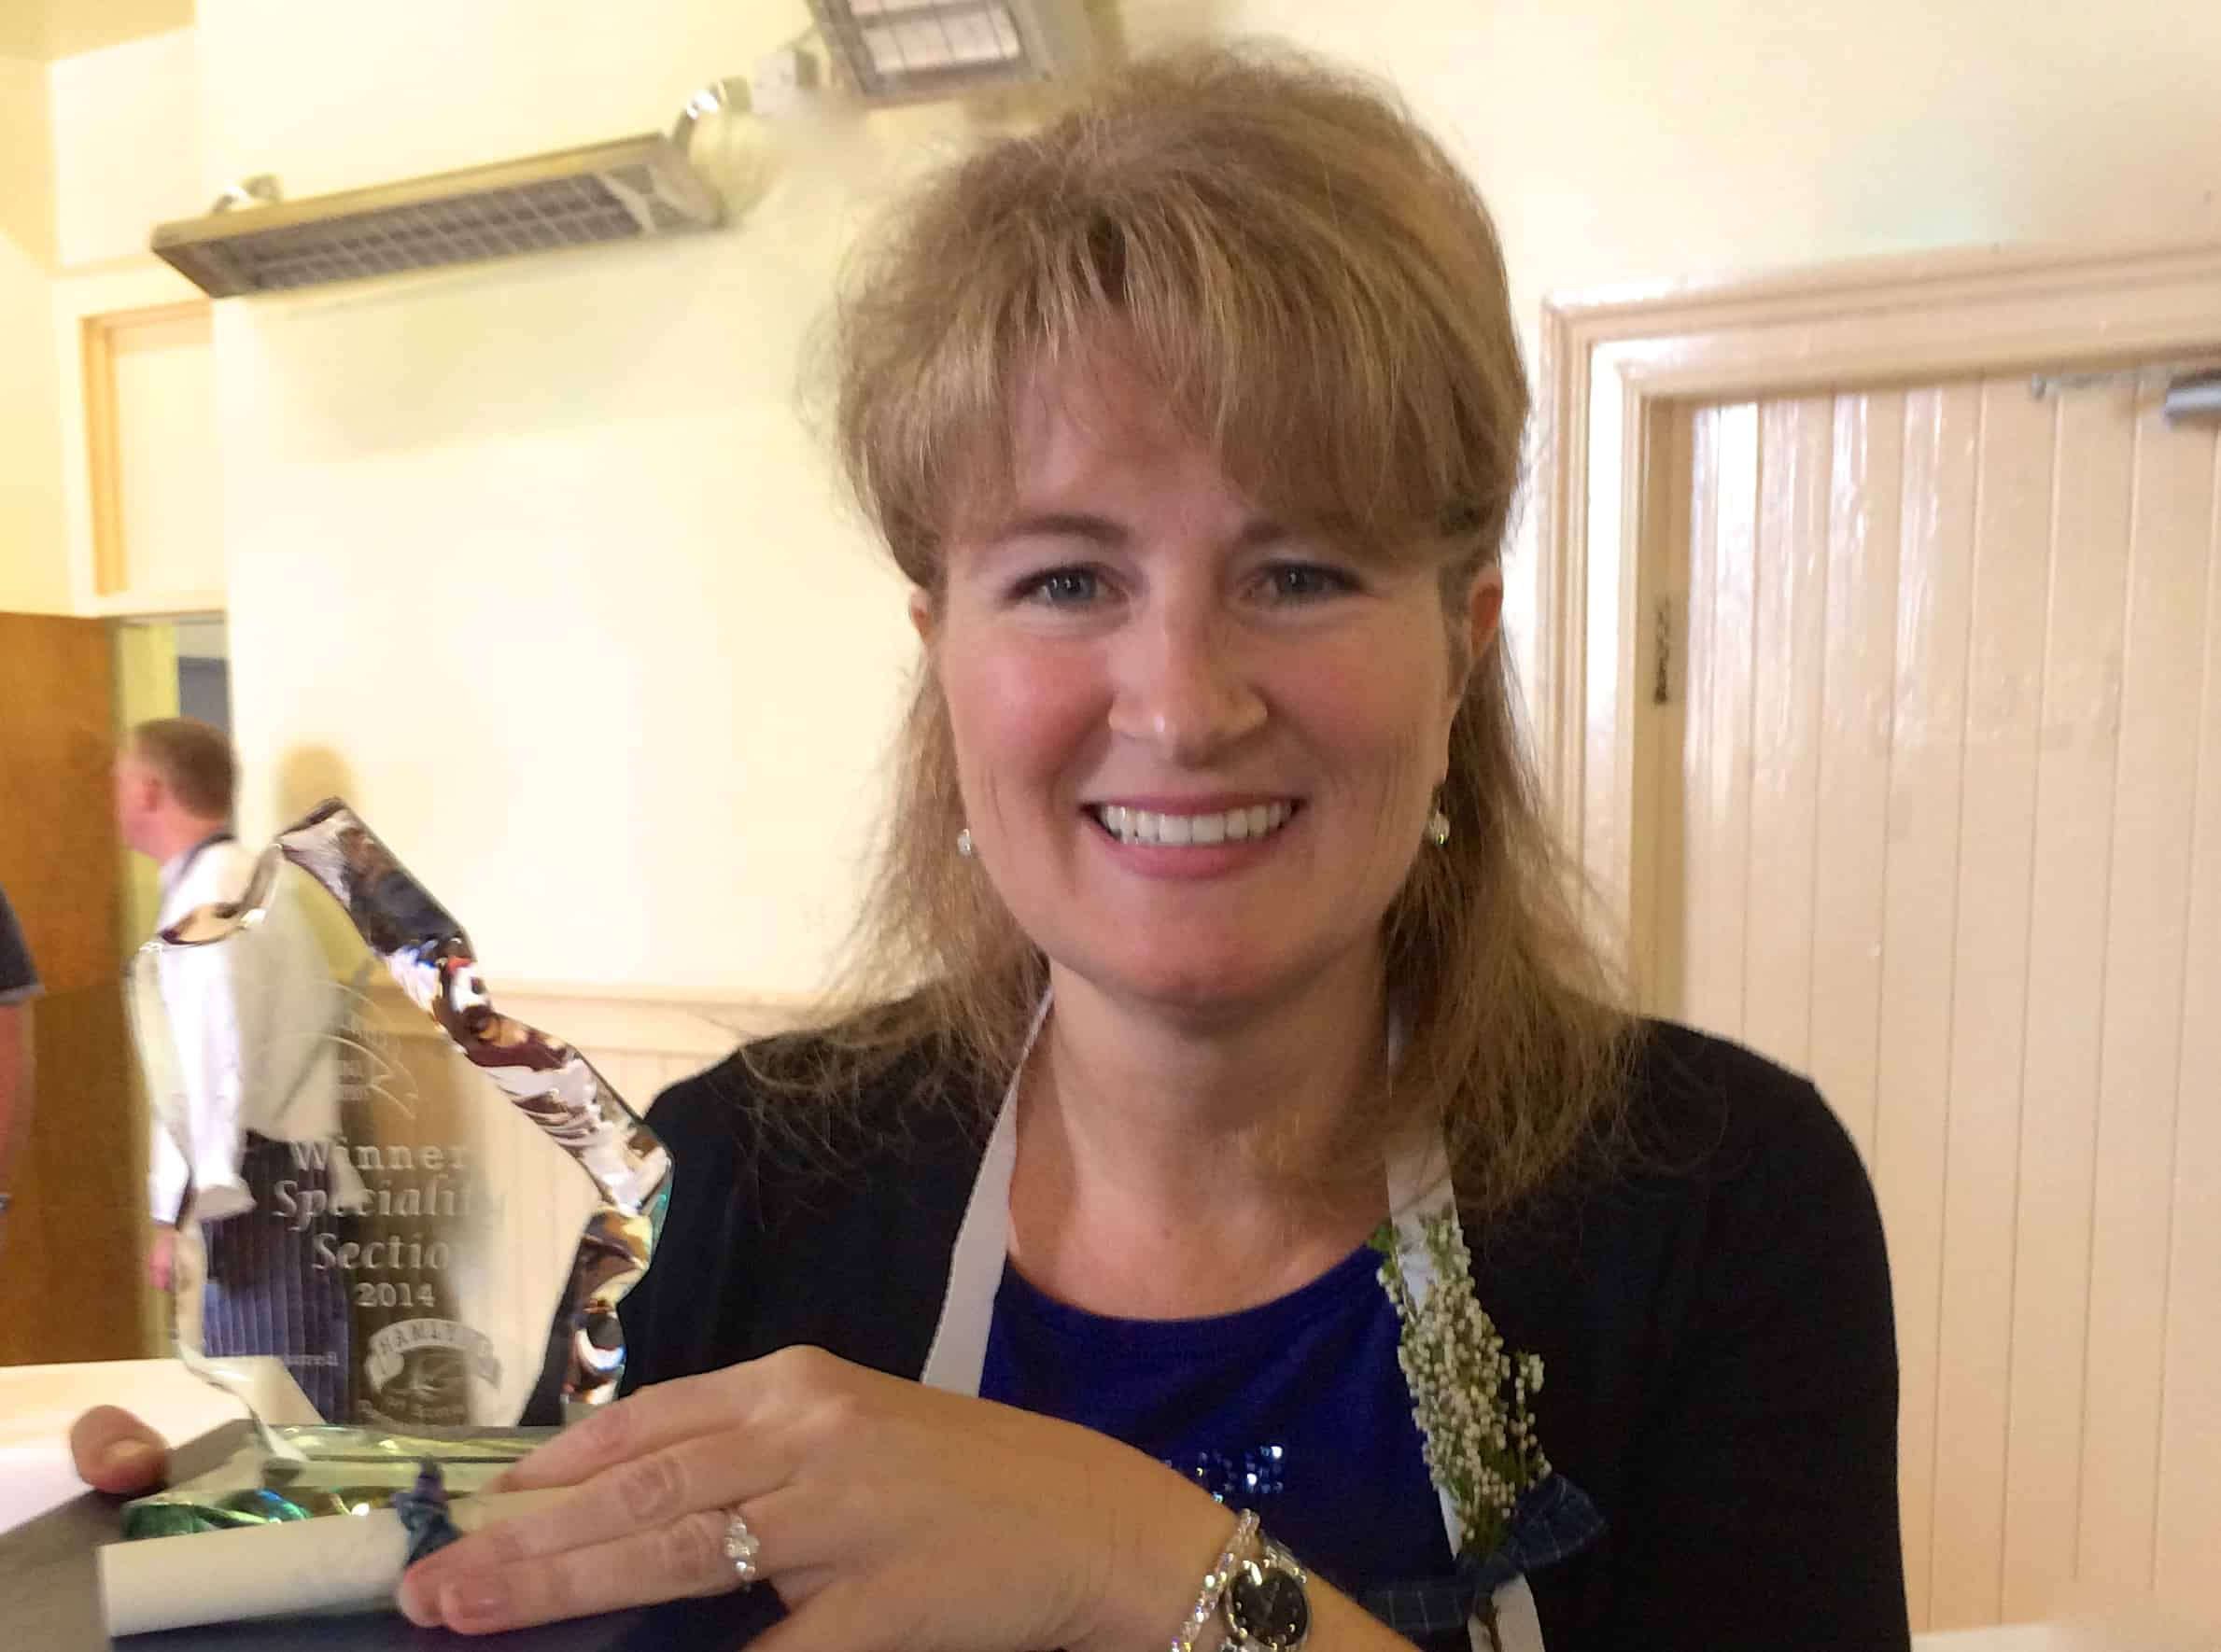 Golden Spurtle speciality winner work with Christina's Cucina